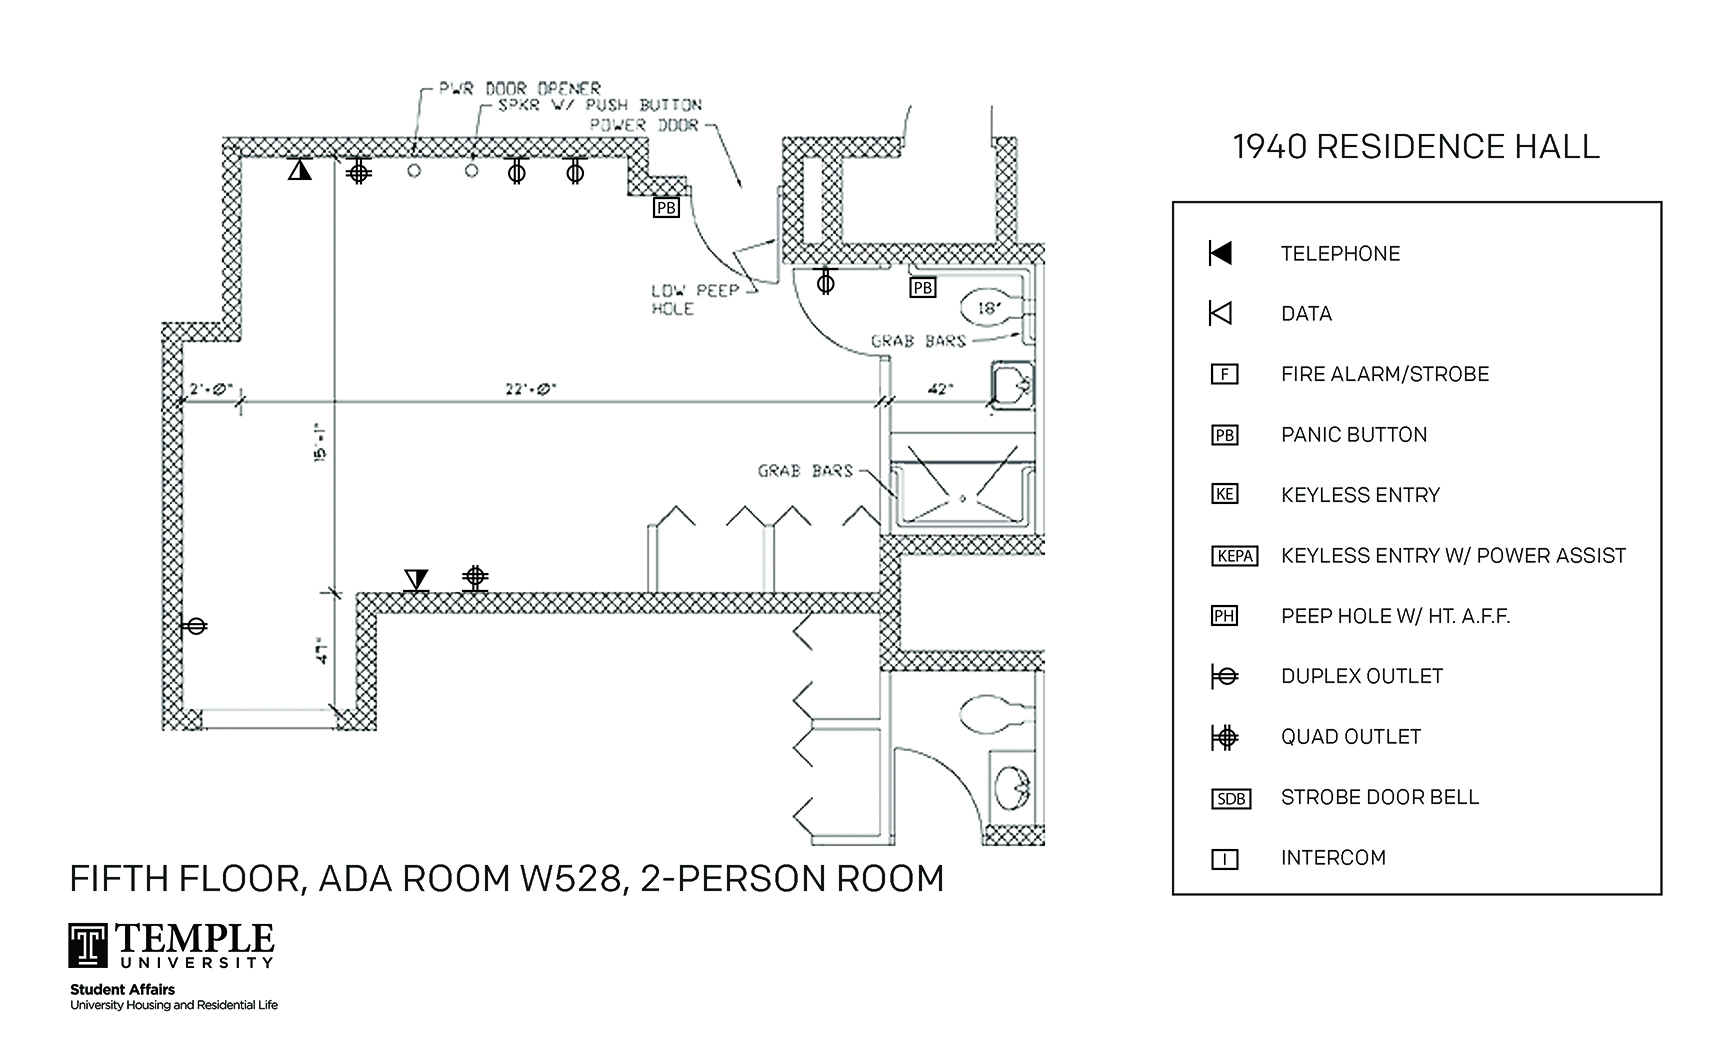 Accessible Room Diagrams: 2 person, 1 bedroom Suite - W528